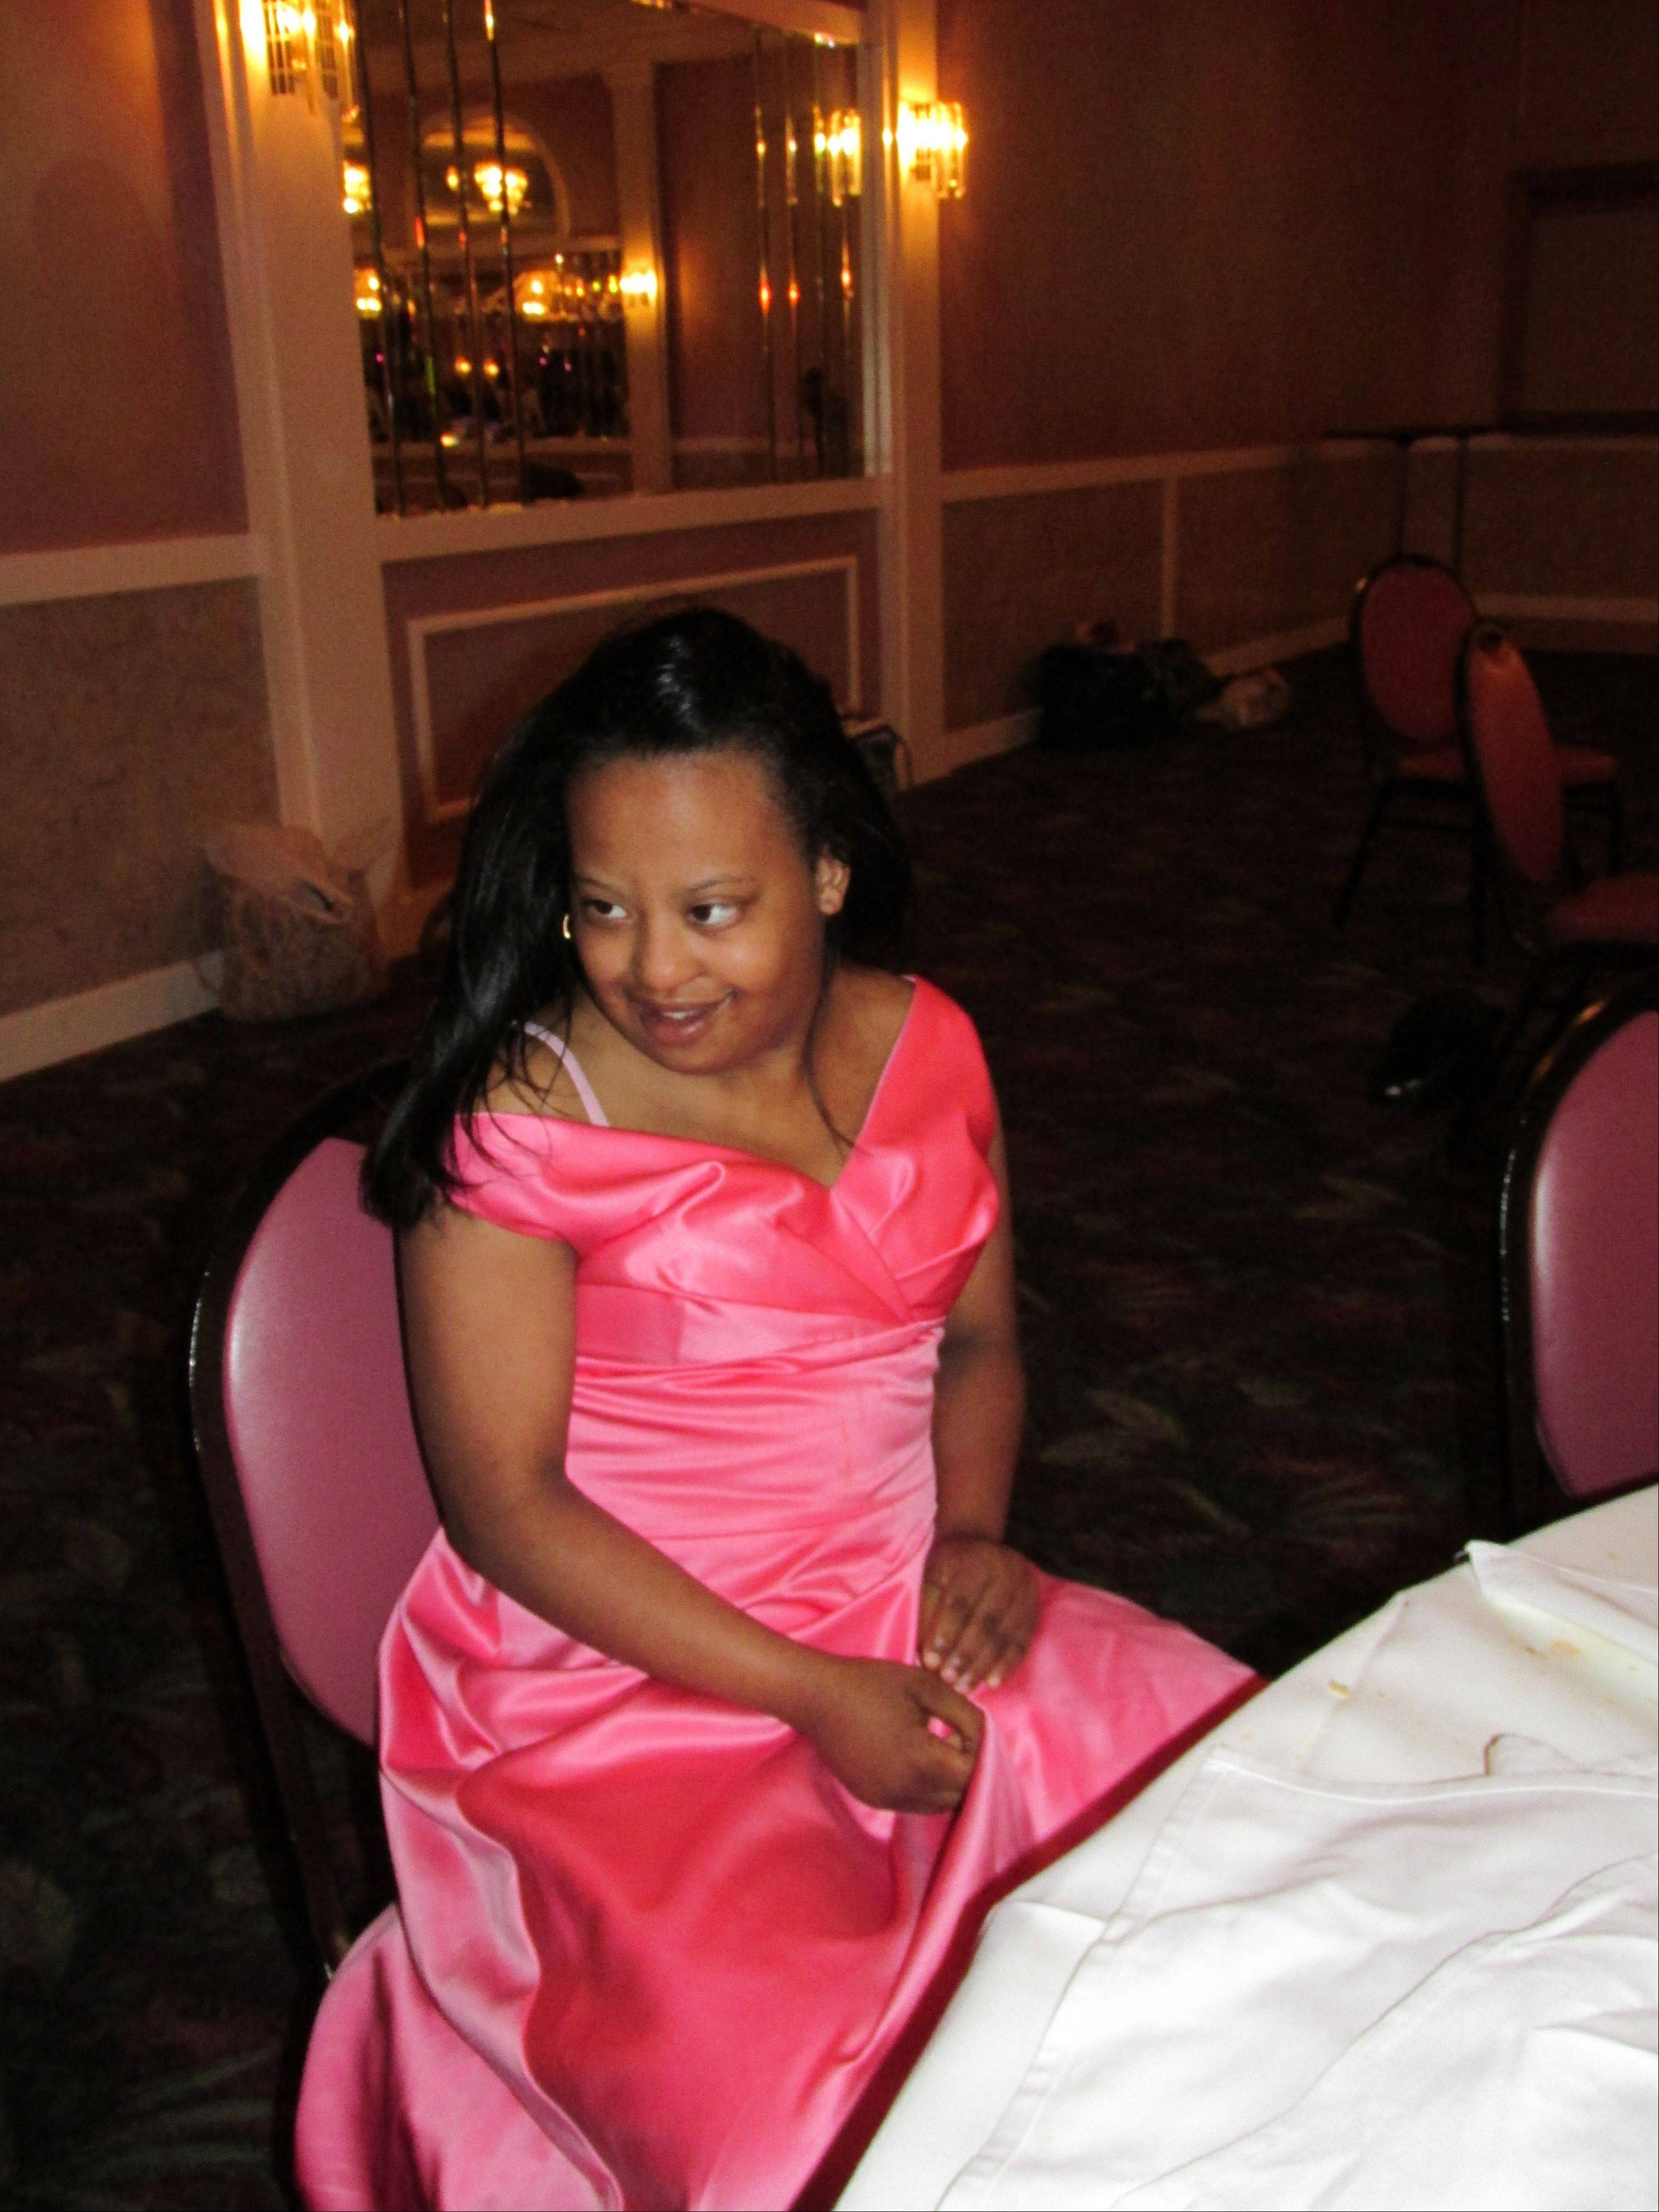 Jasmine Gresham looking radiant as she takes a break from the action on the dance floor.